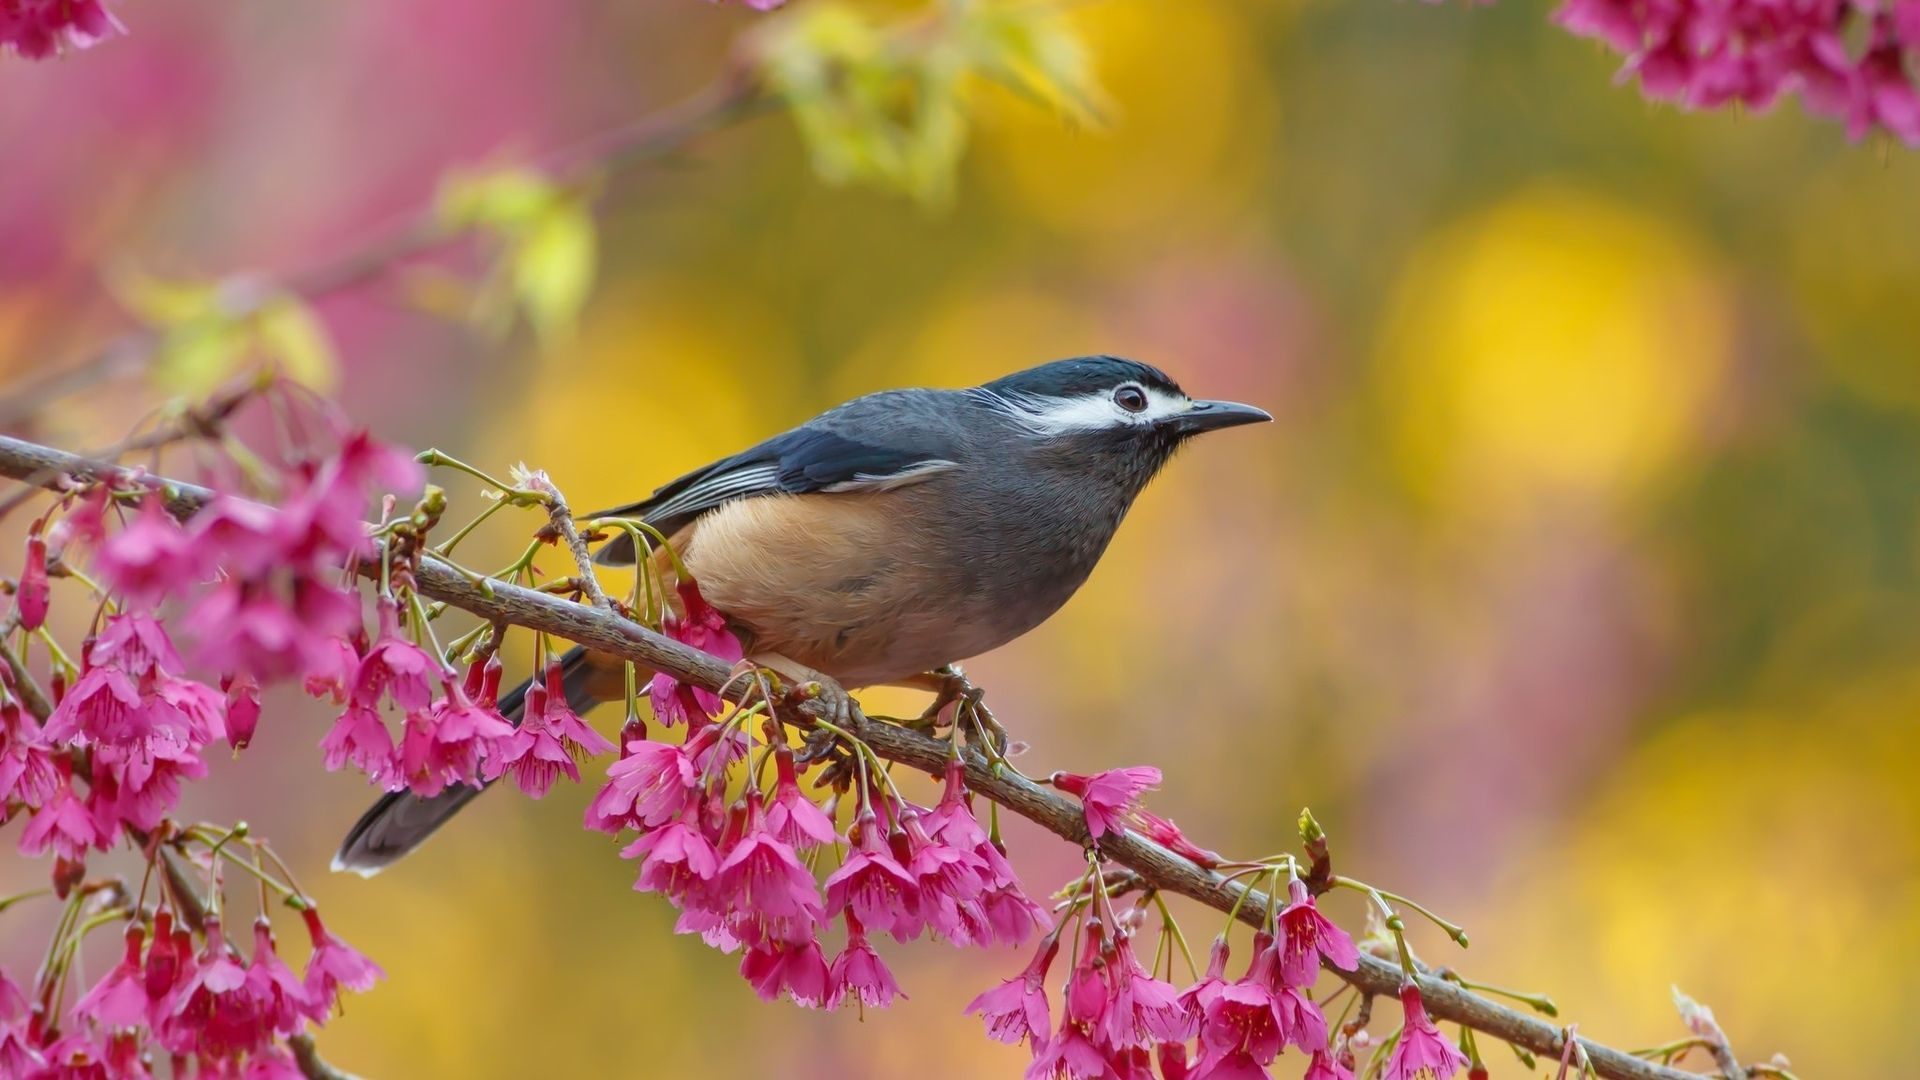 Birds And Trees download free wallpapers for pc in hd